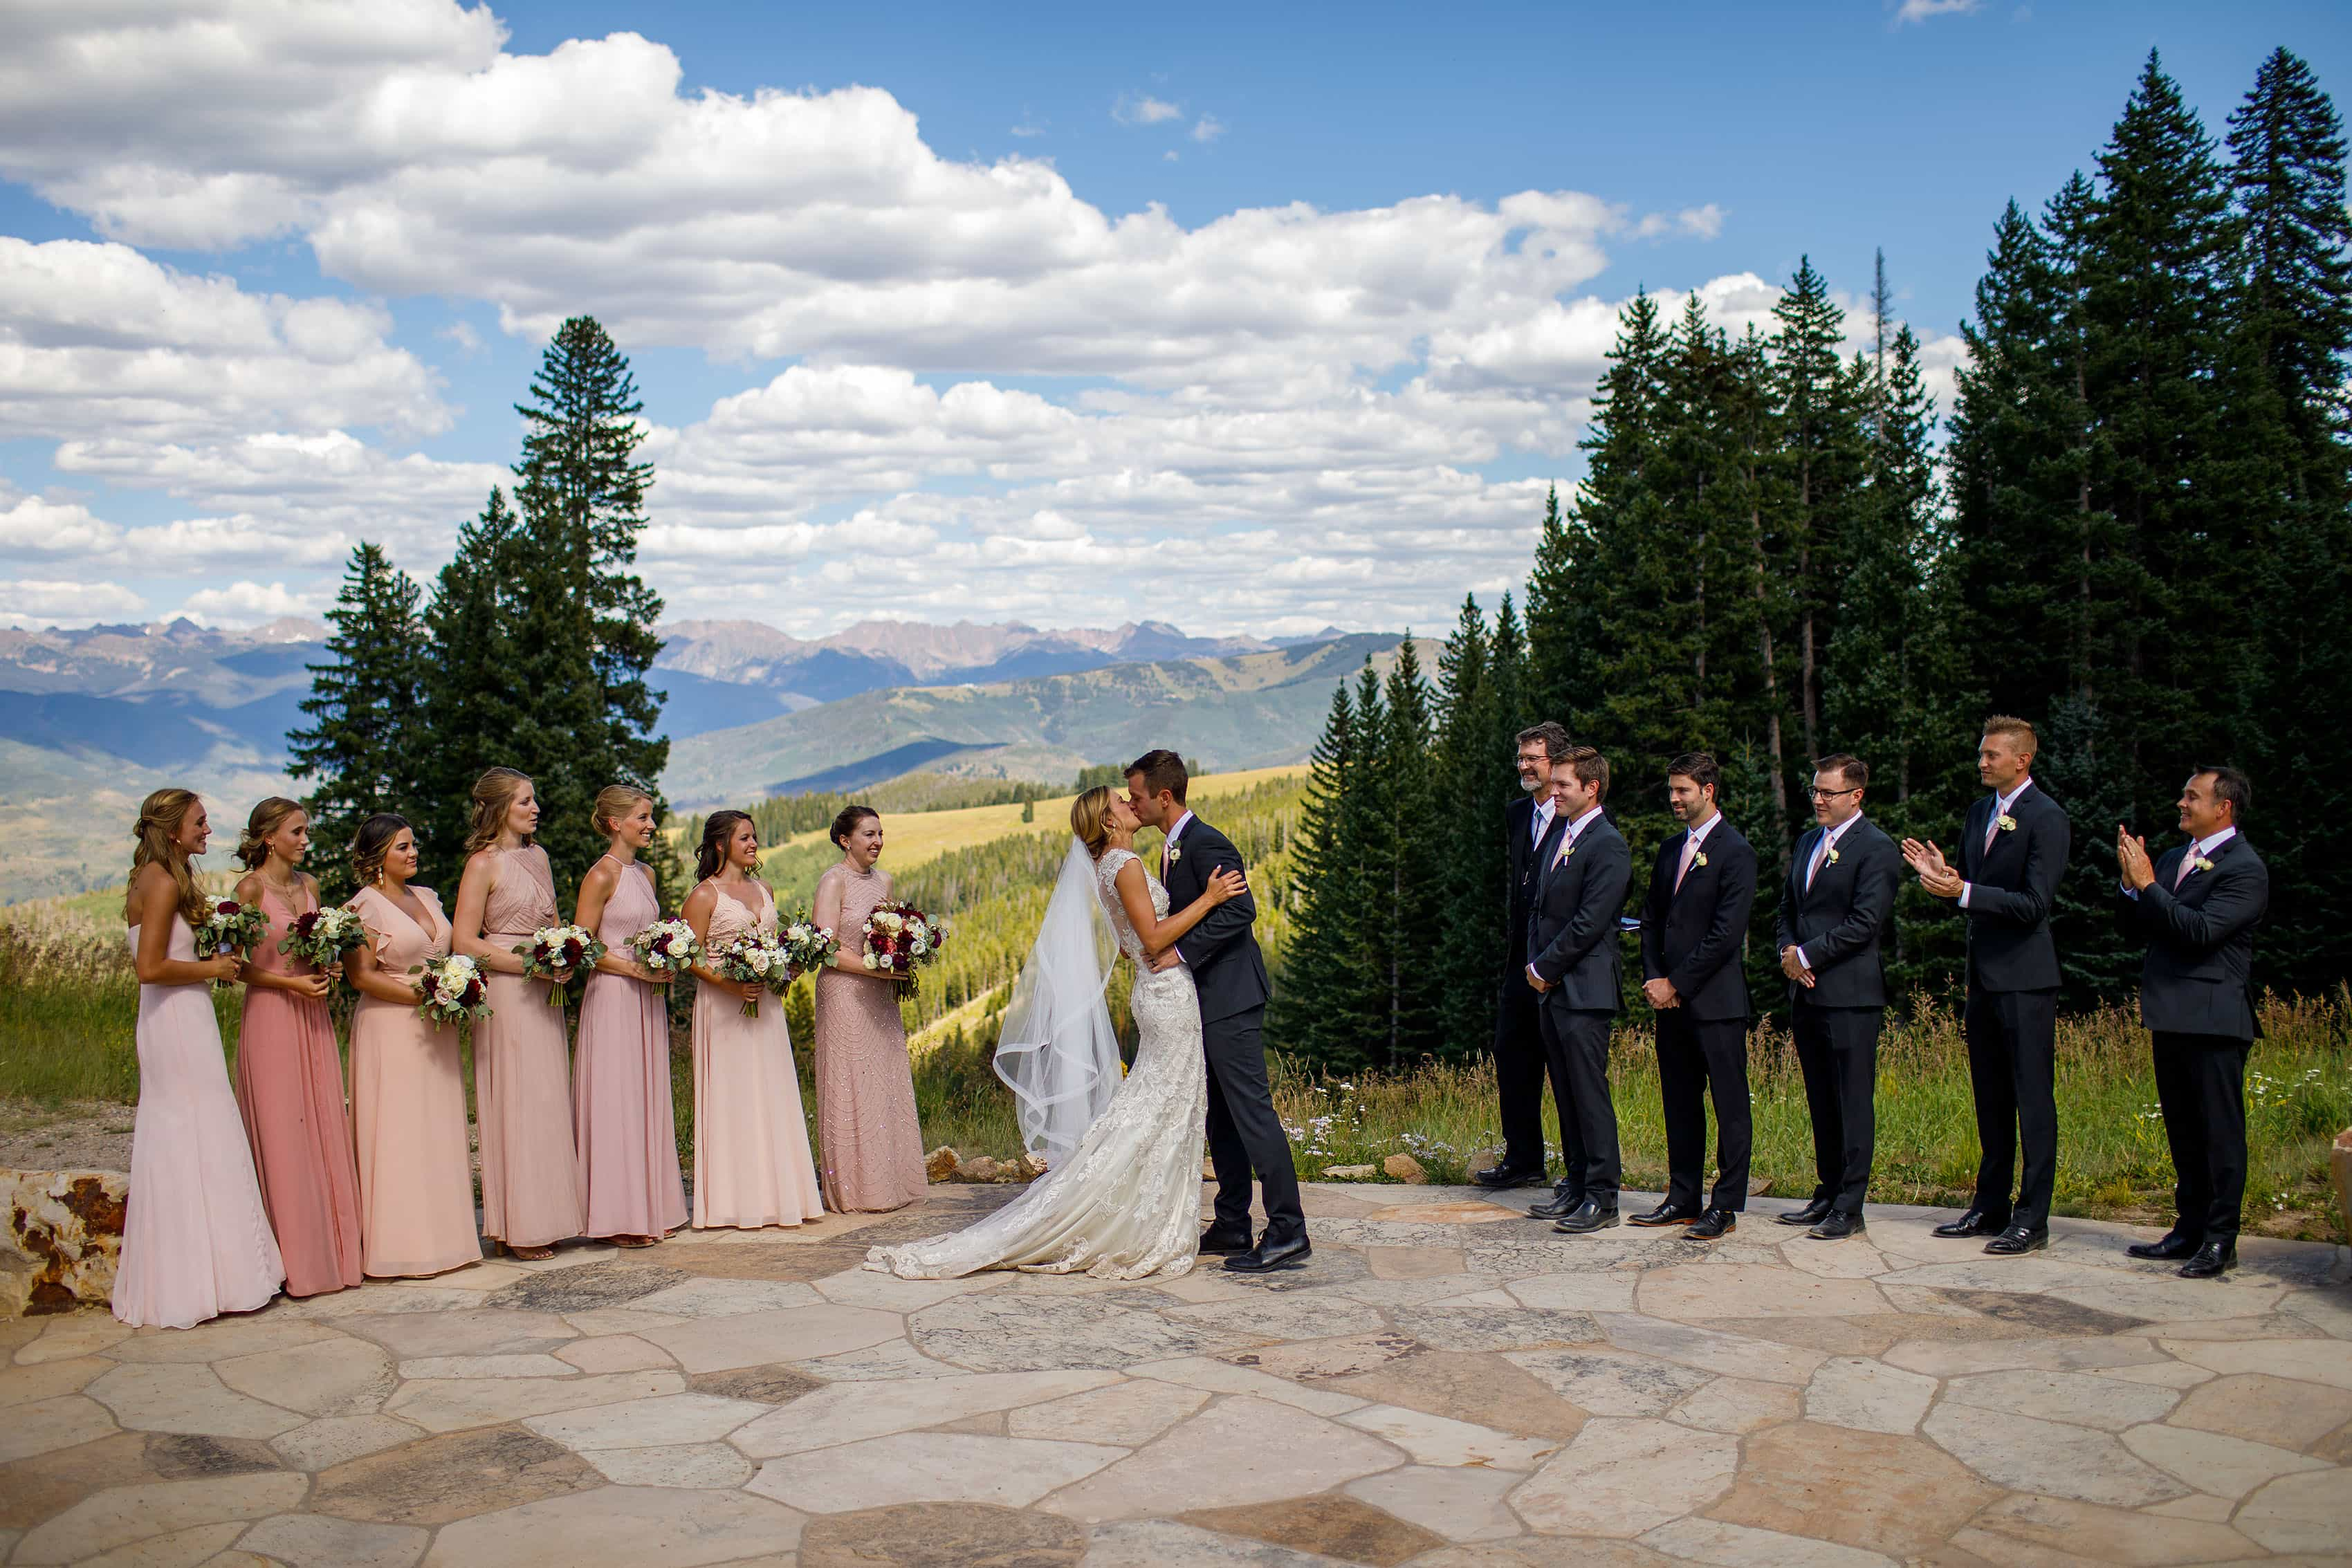 Bride and groom kiss during their mountain ceremony at Beaver Creek wedding deck